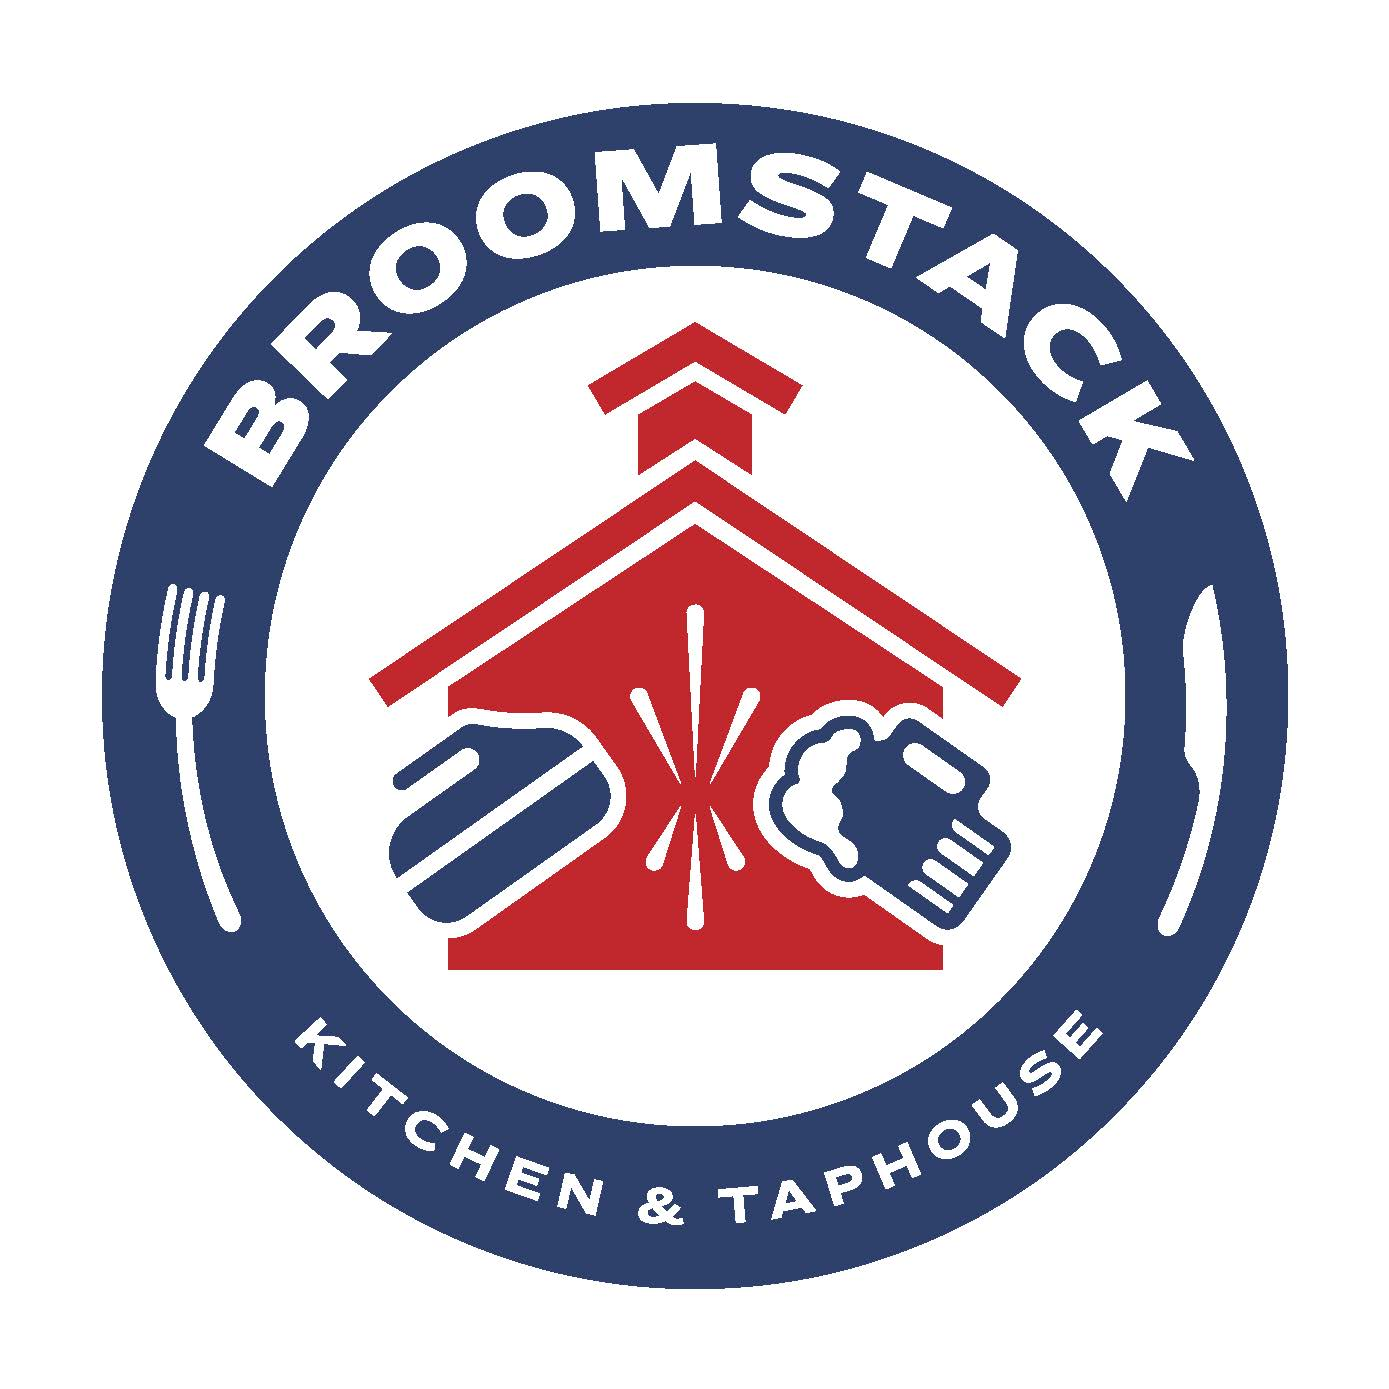 Broomstack Kitchen & Taphouse Logo